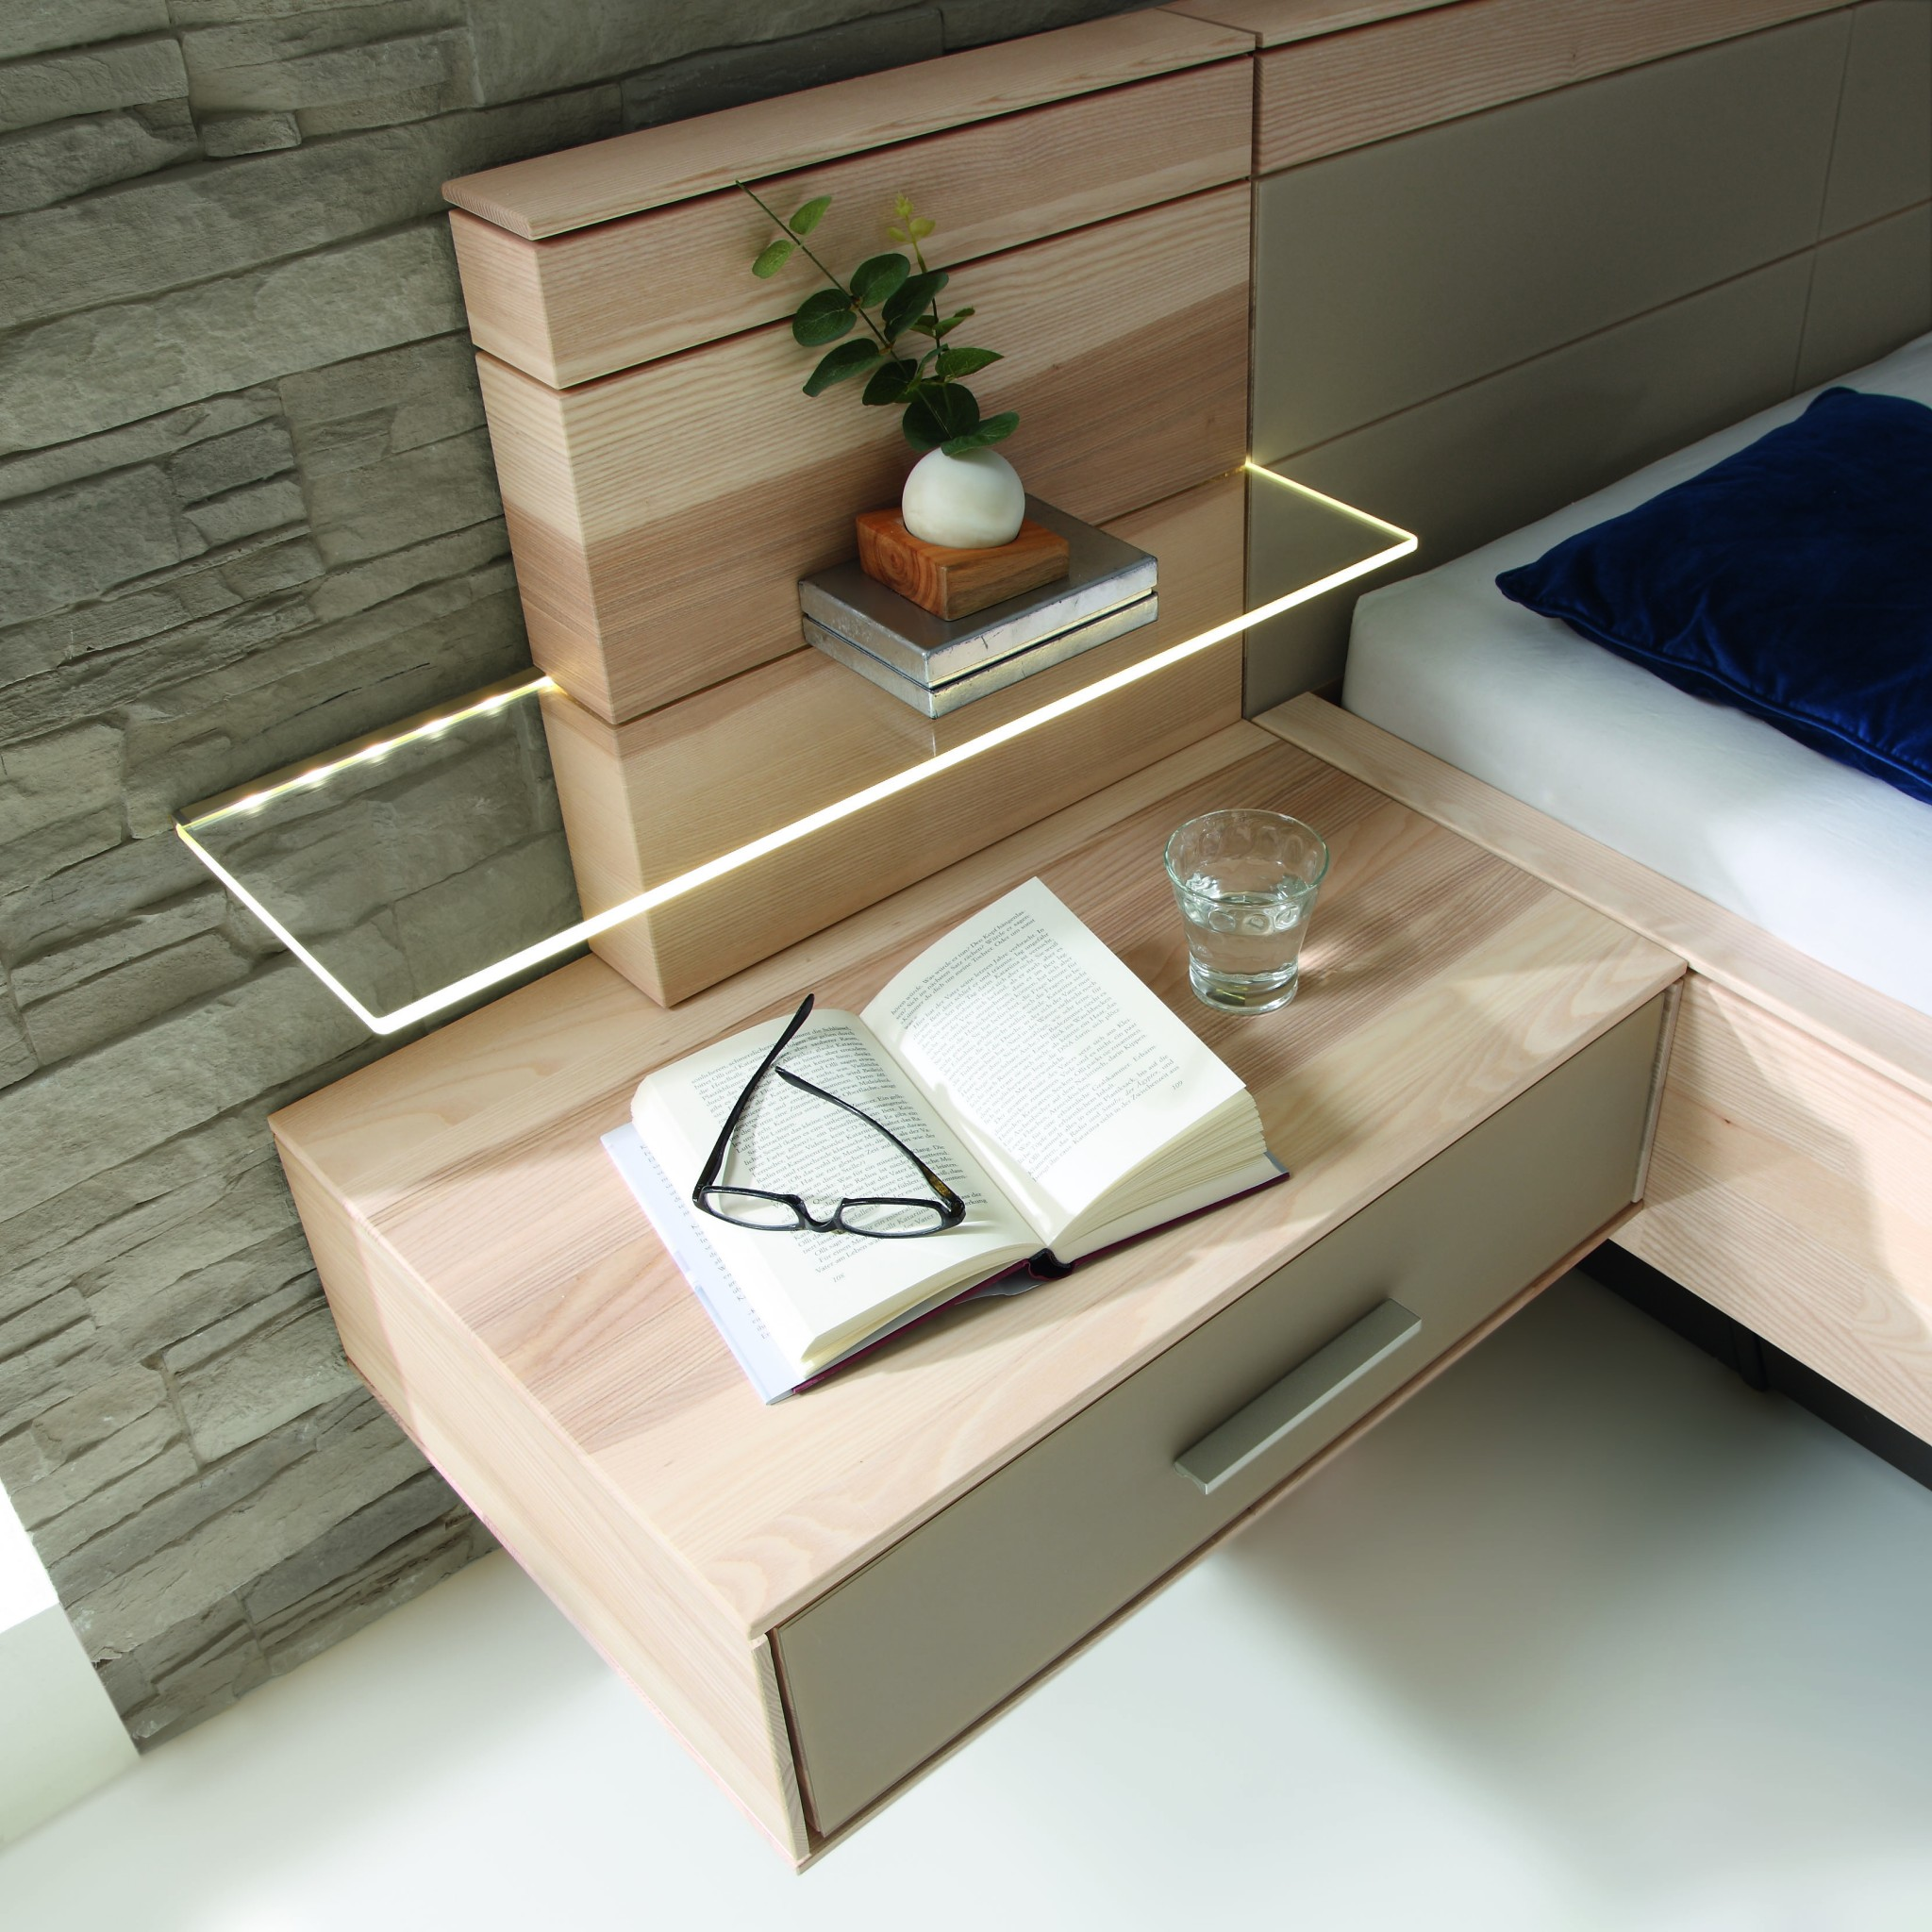 mira detail h ngenachtk stchen m bel polt m belhaus. Black Bedroom Furniture Sets. Home Design Ideas